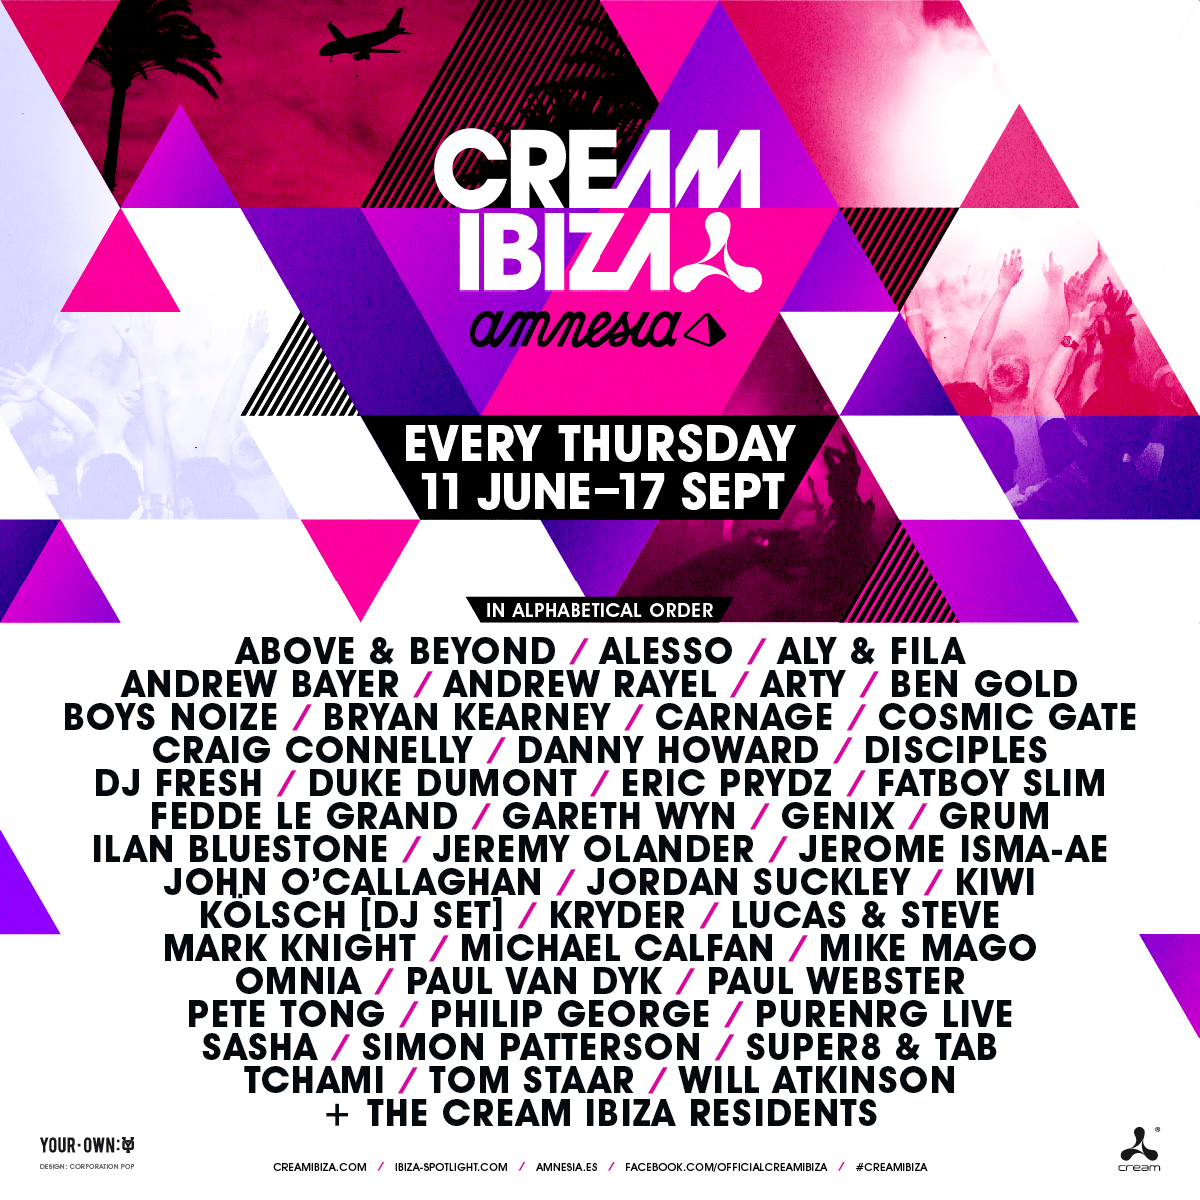 #CreamIbiza15… every Thursday at @Amnesia_Ibiza! 11 June – 17 Sept  Full calendar & tickets: http://t.co/8DWlXShBmA http://t.co/g4aA5rI2gm